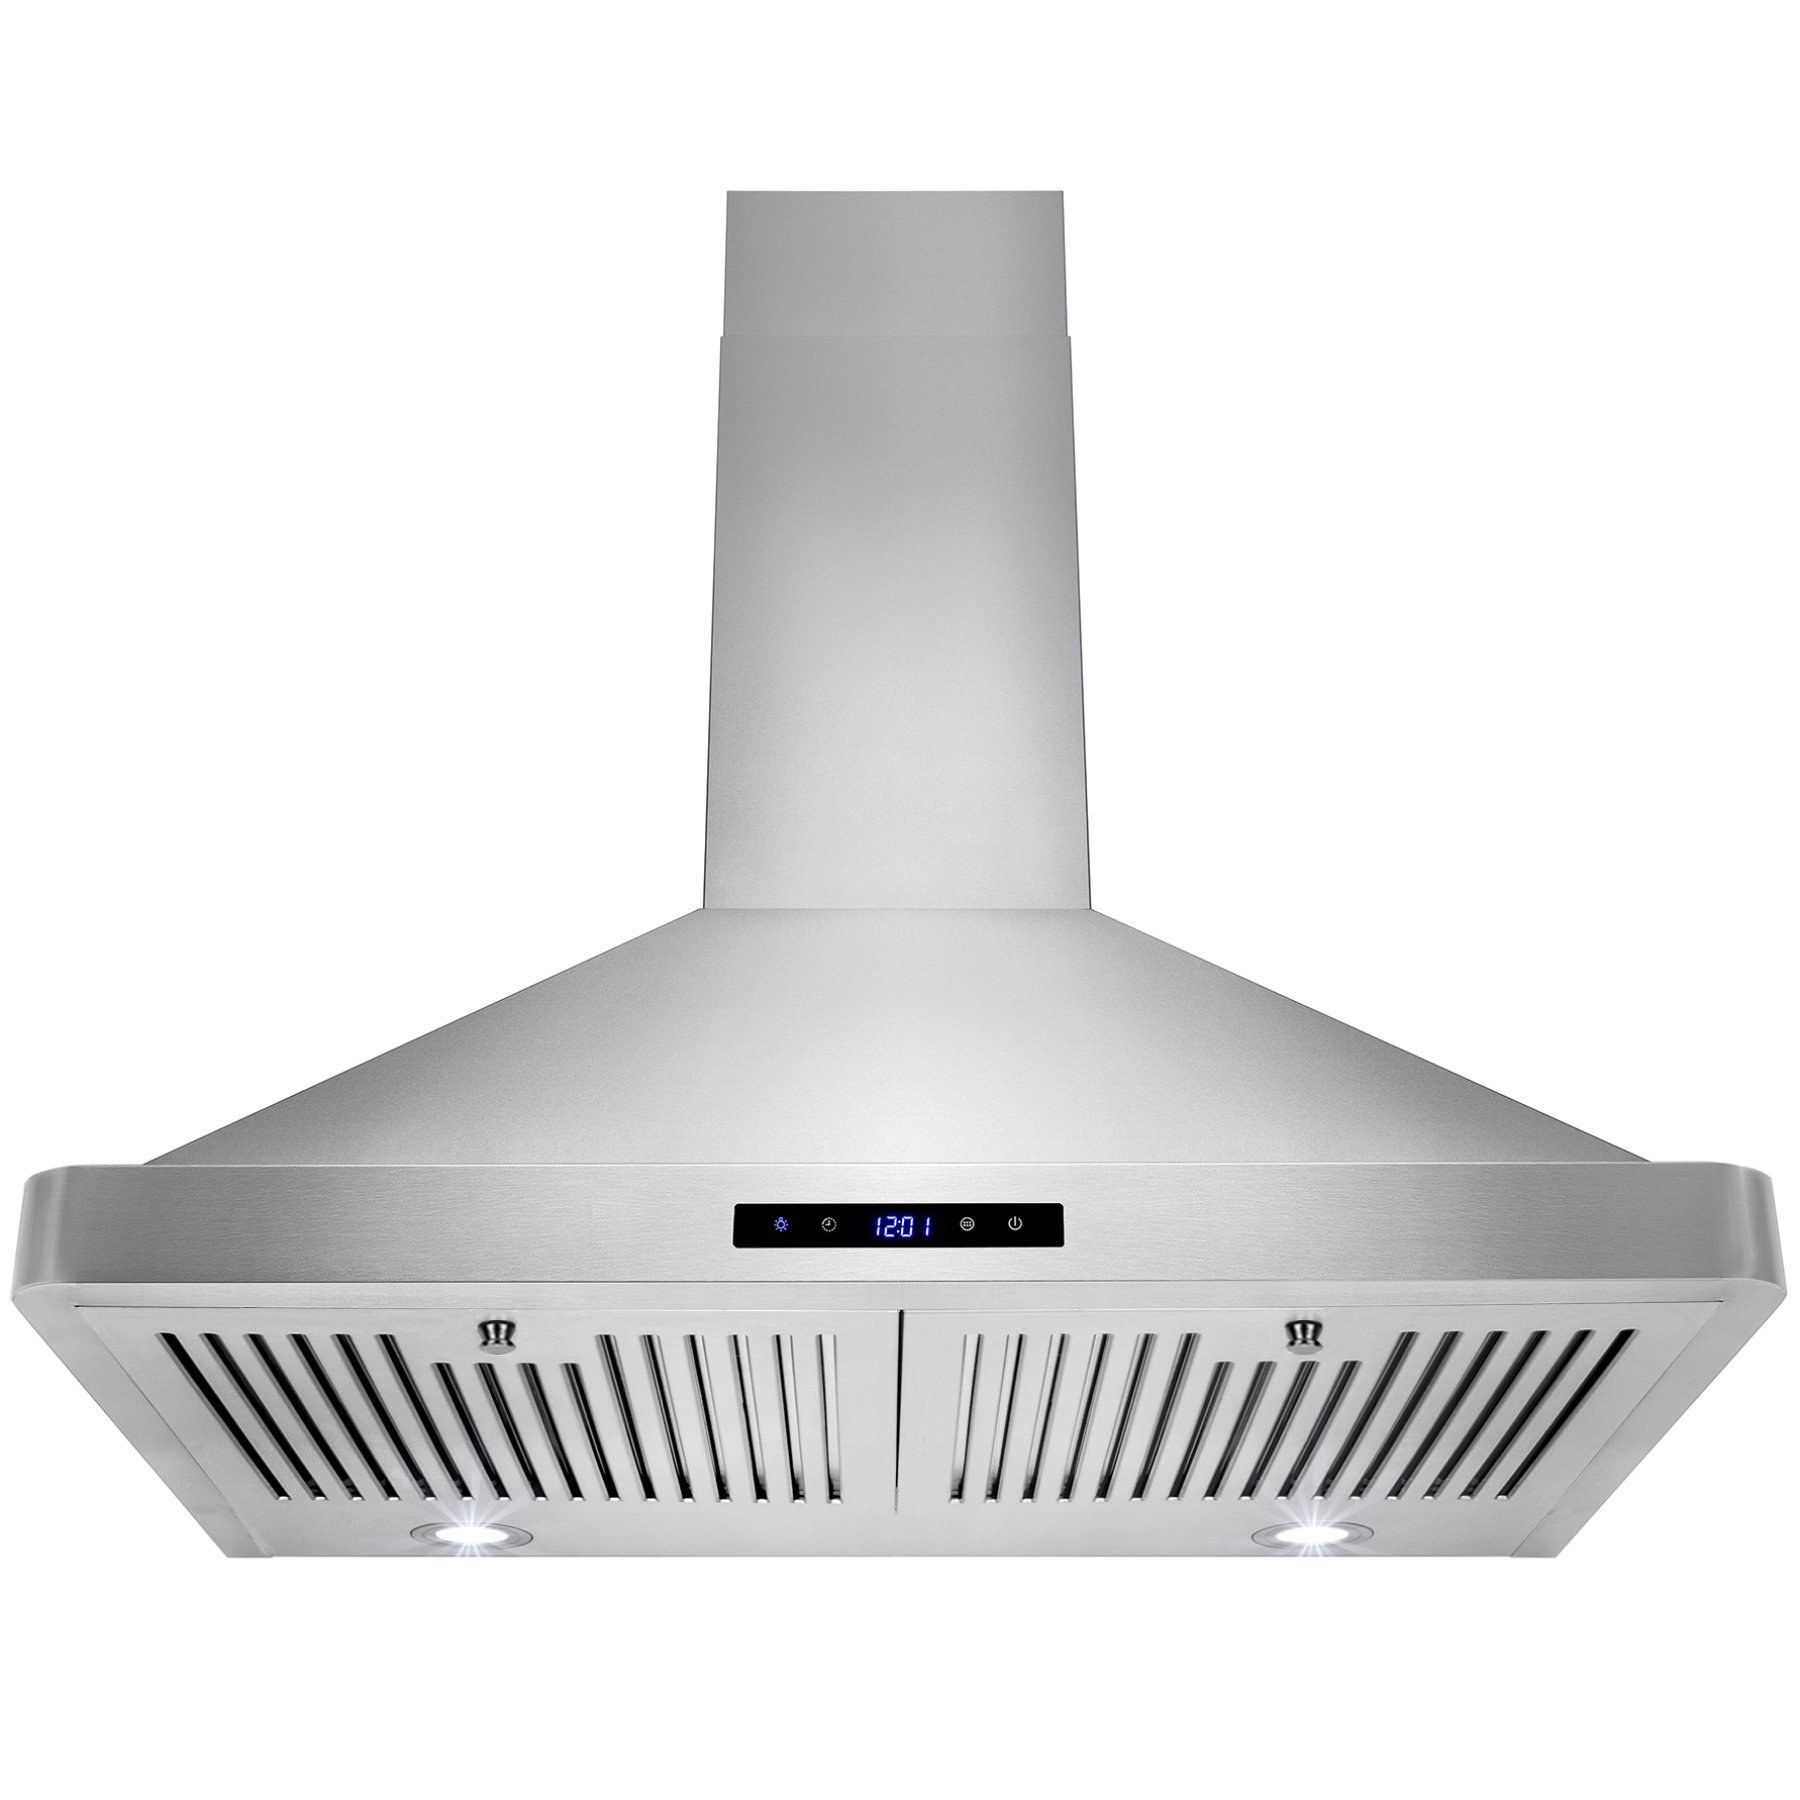 Golden Vantage 30'' Wall Mount LED Display Touch Control High Quality Stainless Steel/Tempered Glass Vent Ductless/Ducted Range Hood w/ Multi Layer Aluminum Mesh Grease Filter (30'' Stainless Steel) by Golden Vantage